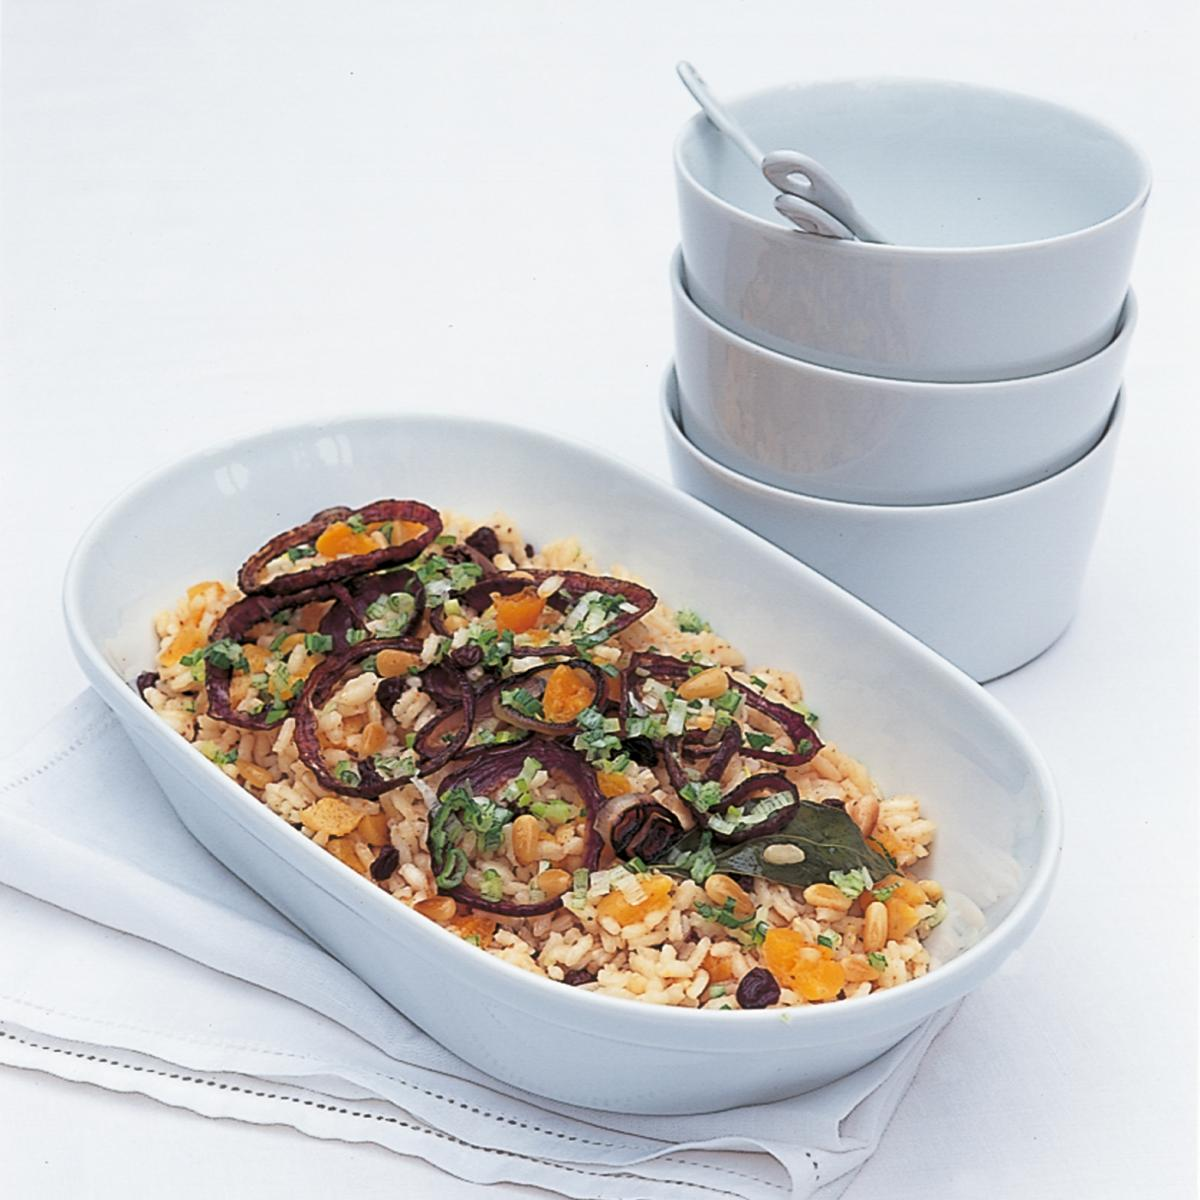 A picture of Delia's Spiced Carnaroli Rice Salad recipe